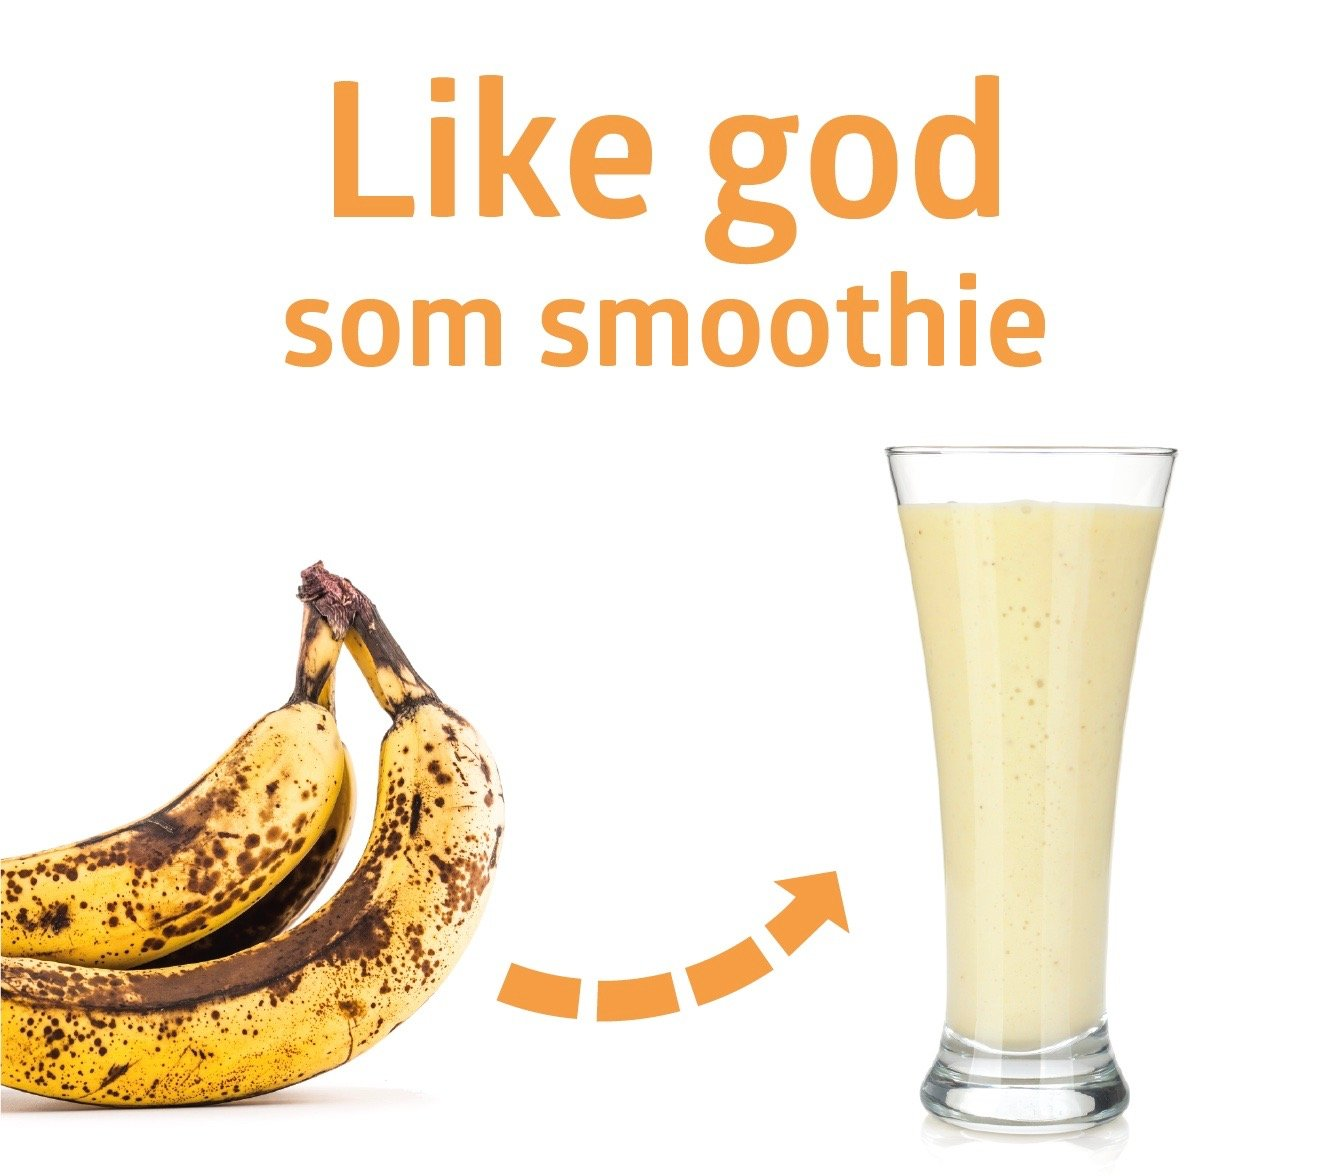 smoothie_digitale_annonser_matsvinn-04-10